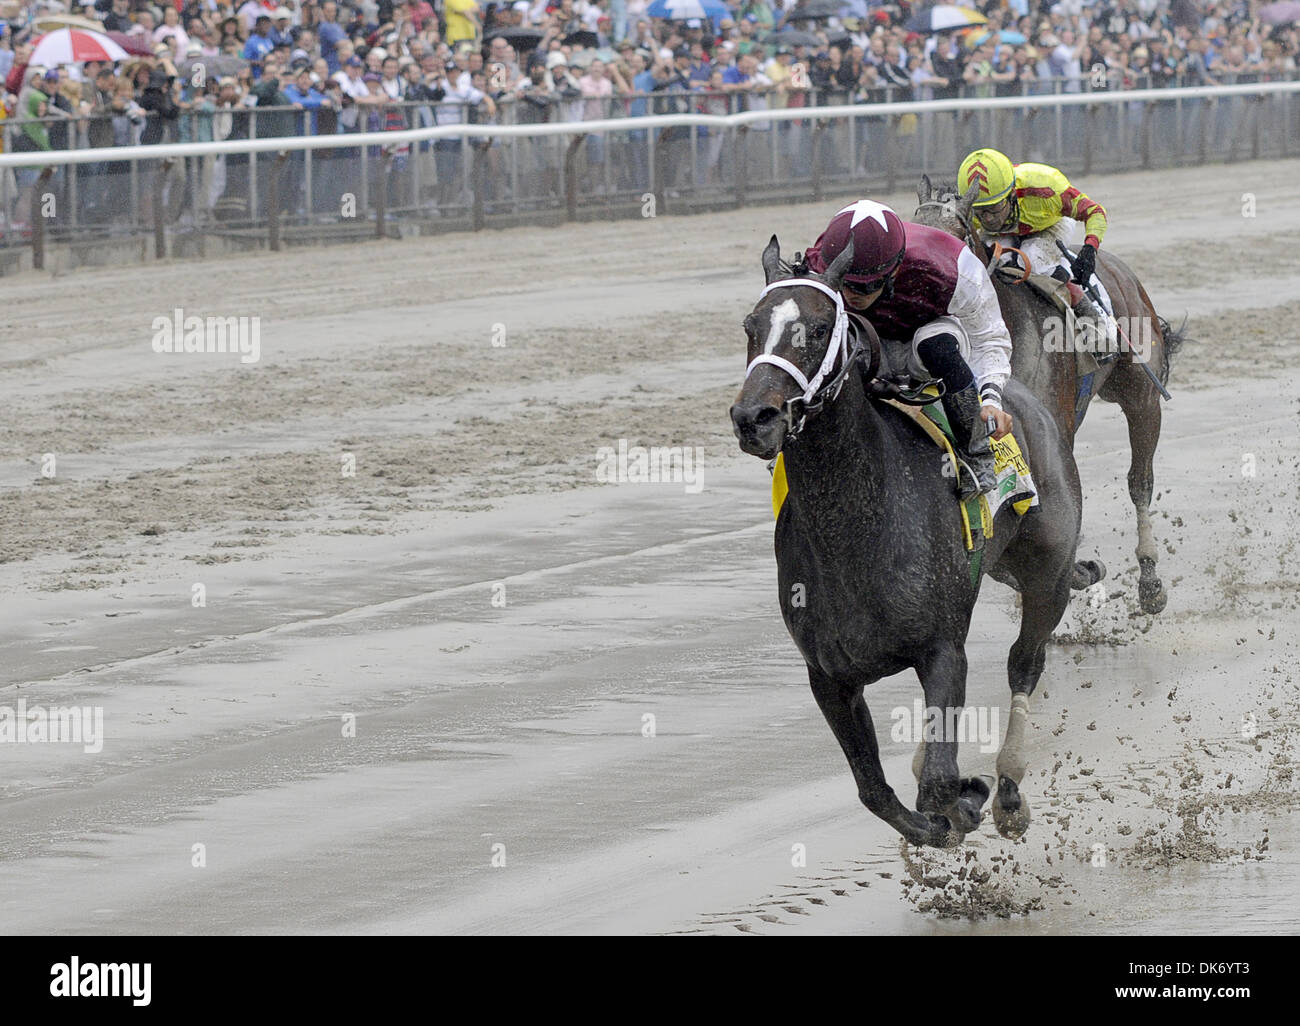 June 11, 2011 - Elmont, New York, U.S. - It's Tricky, ridden by Eddie Castro, rolls to victory in the TVG Acorn Stakes at Belmont Park on Belmont Stakes Day on June 11, 2011. (Credit Image: © Scott Serio/Eclipse/ZUMAPRESS.com) - Stock Image